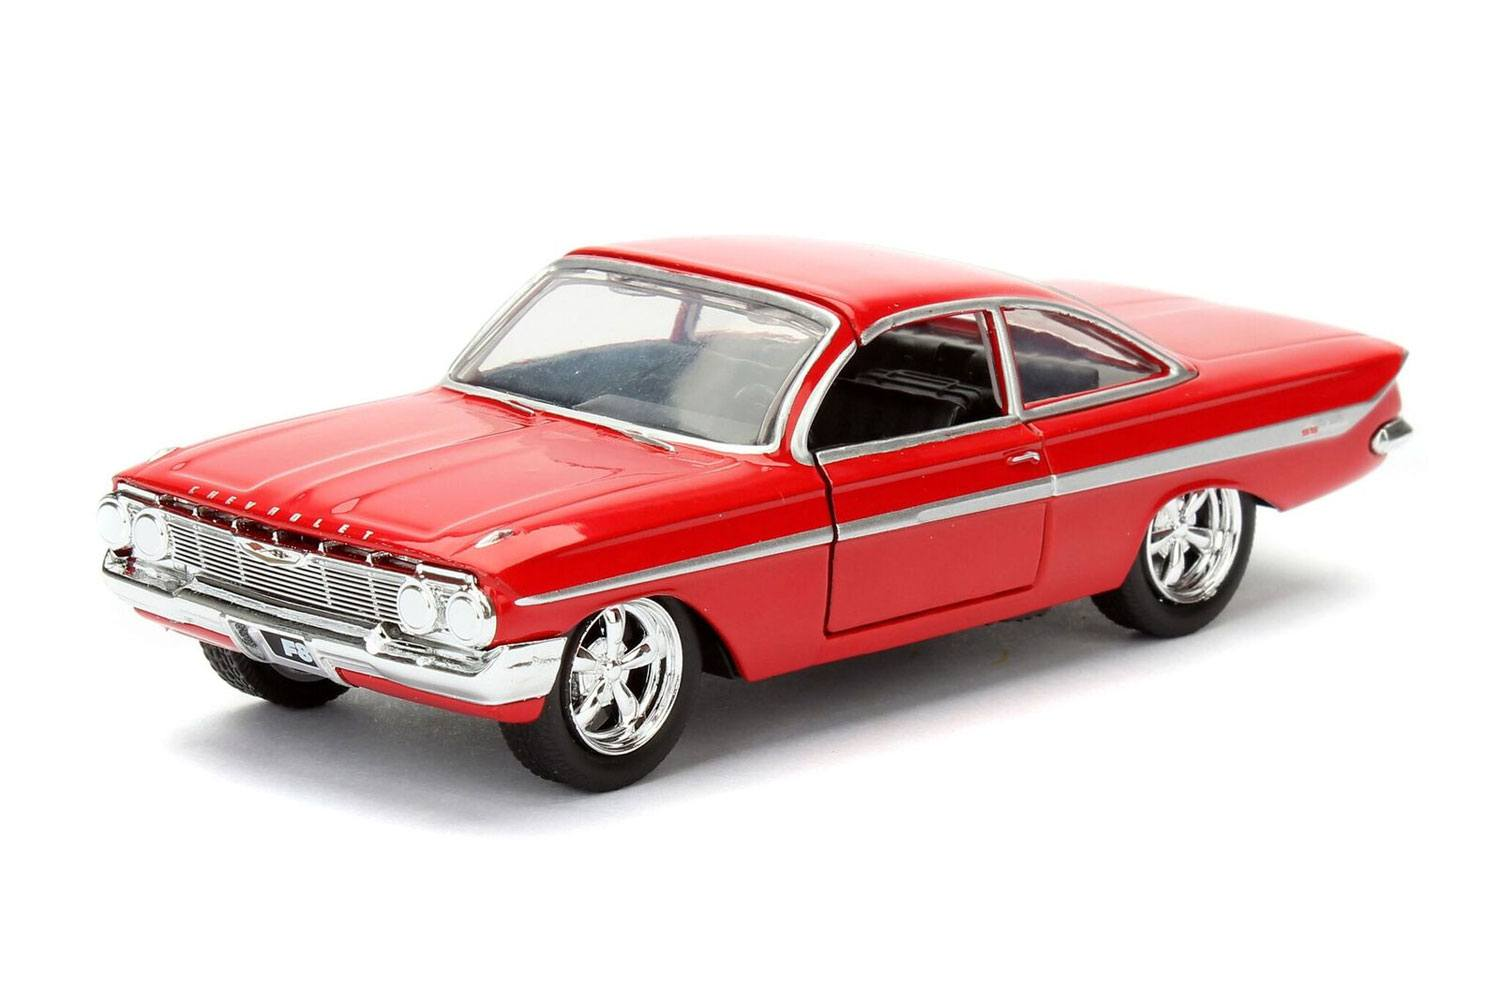 Fast & Furious 8 Diecast Model 1/32 Dom's 1961 Chevy Impala